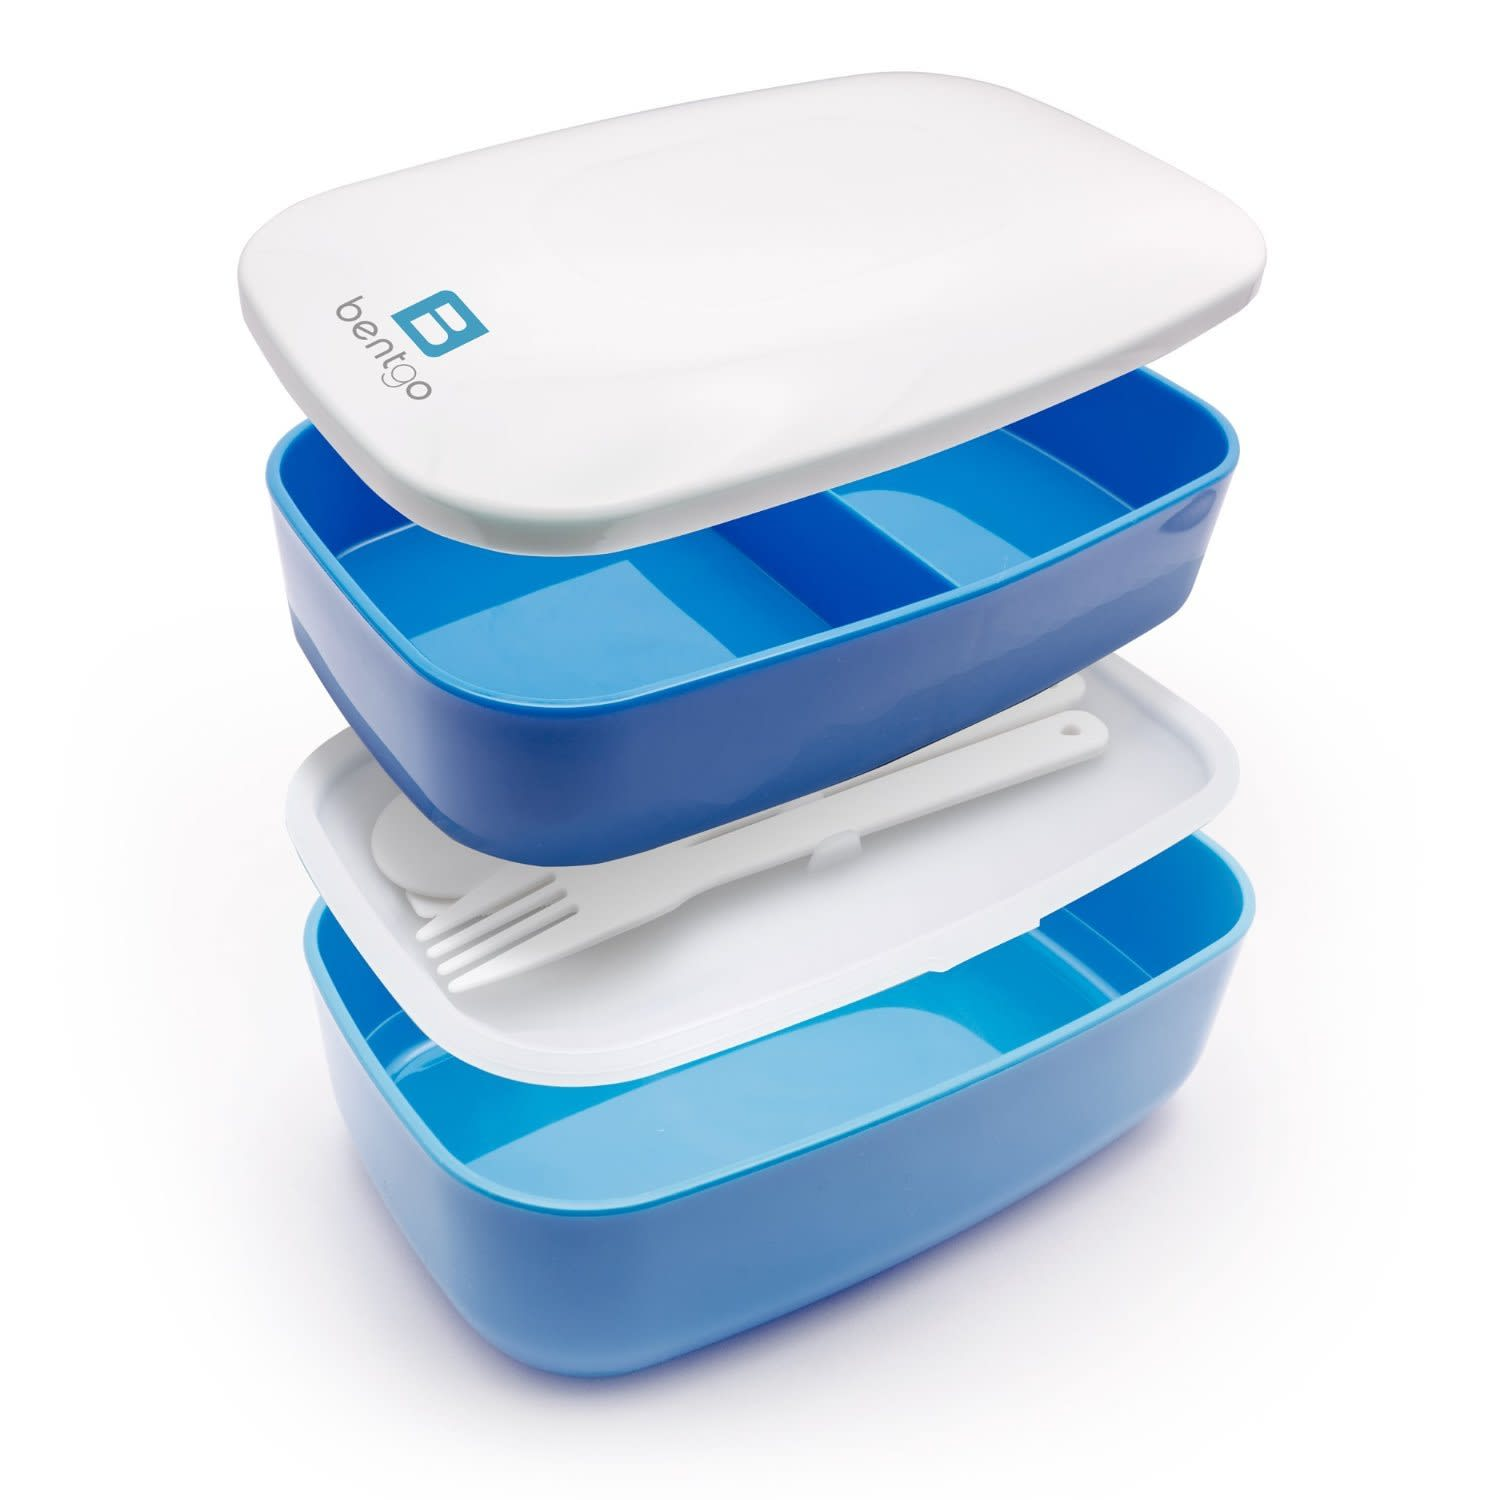 8 Bento Boxes to Help You Brown Bag It: gallery image 6